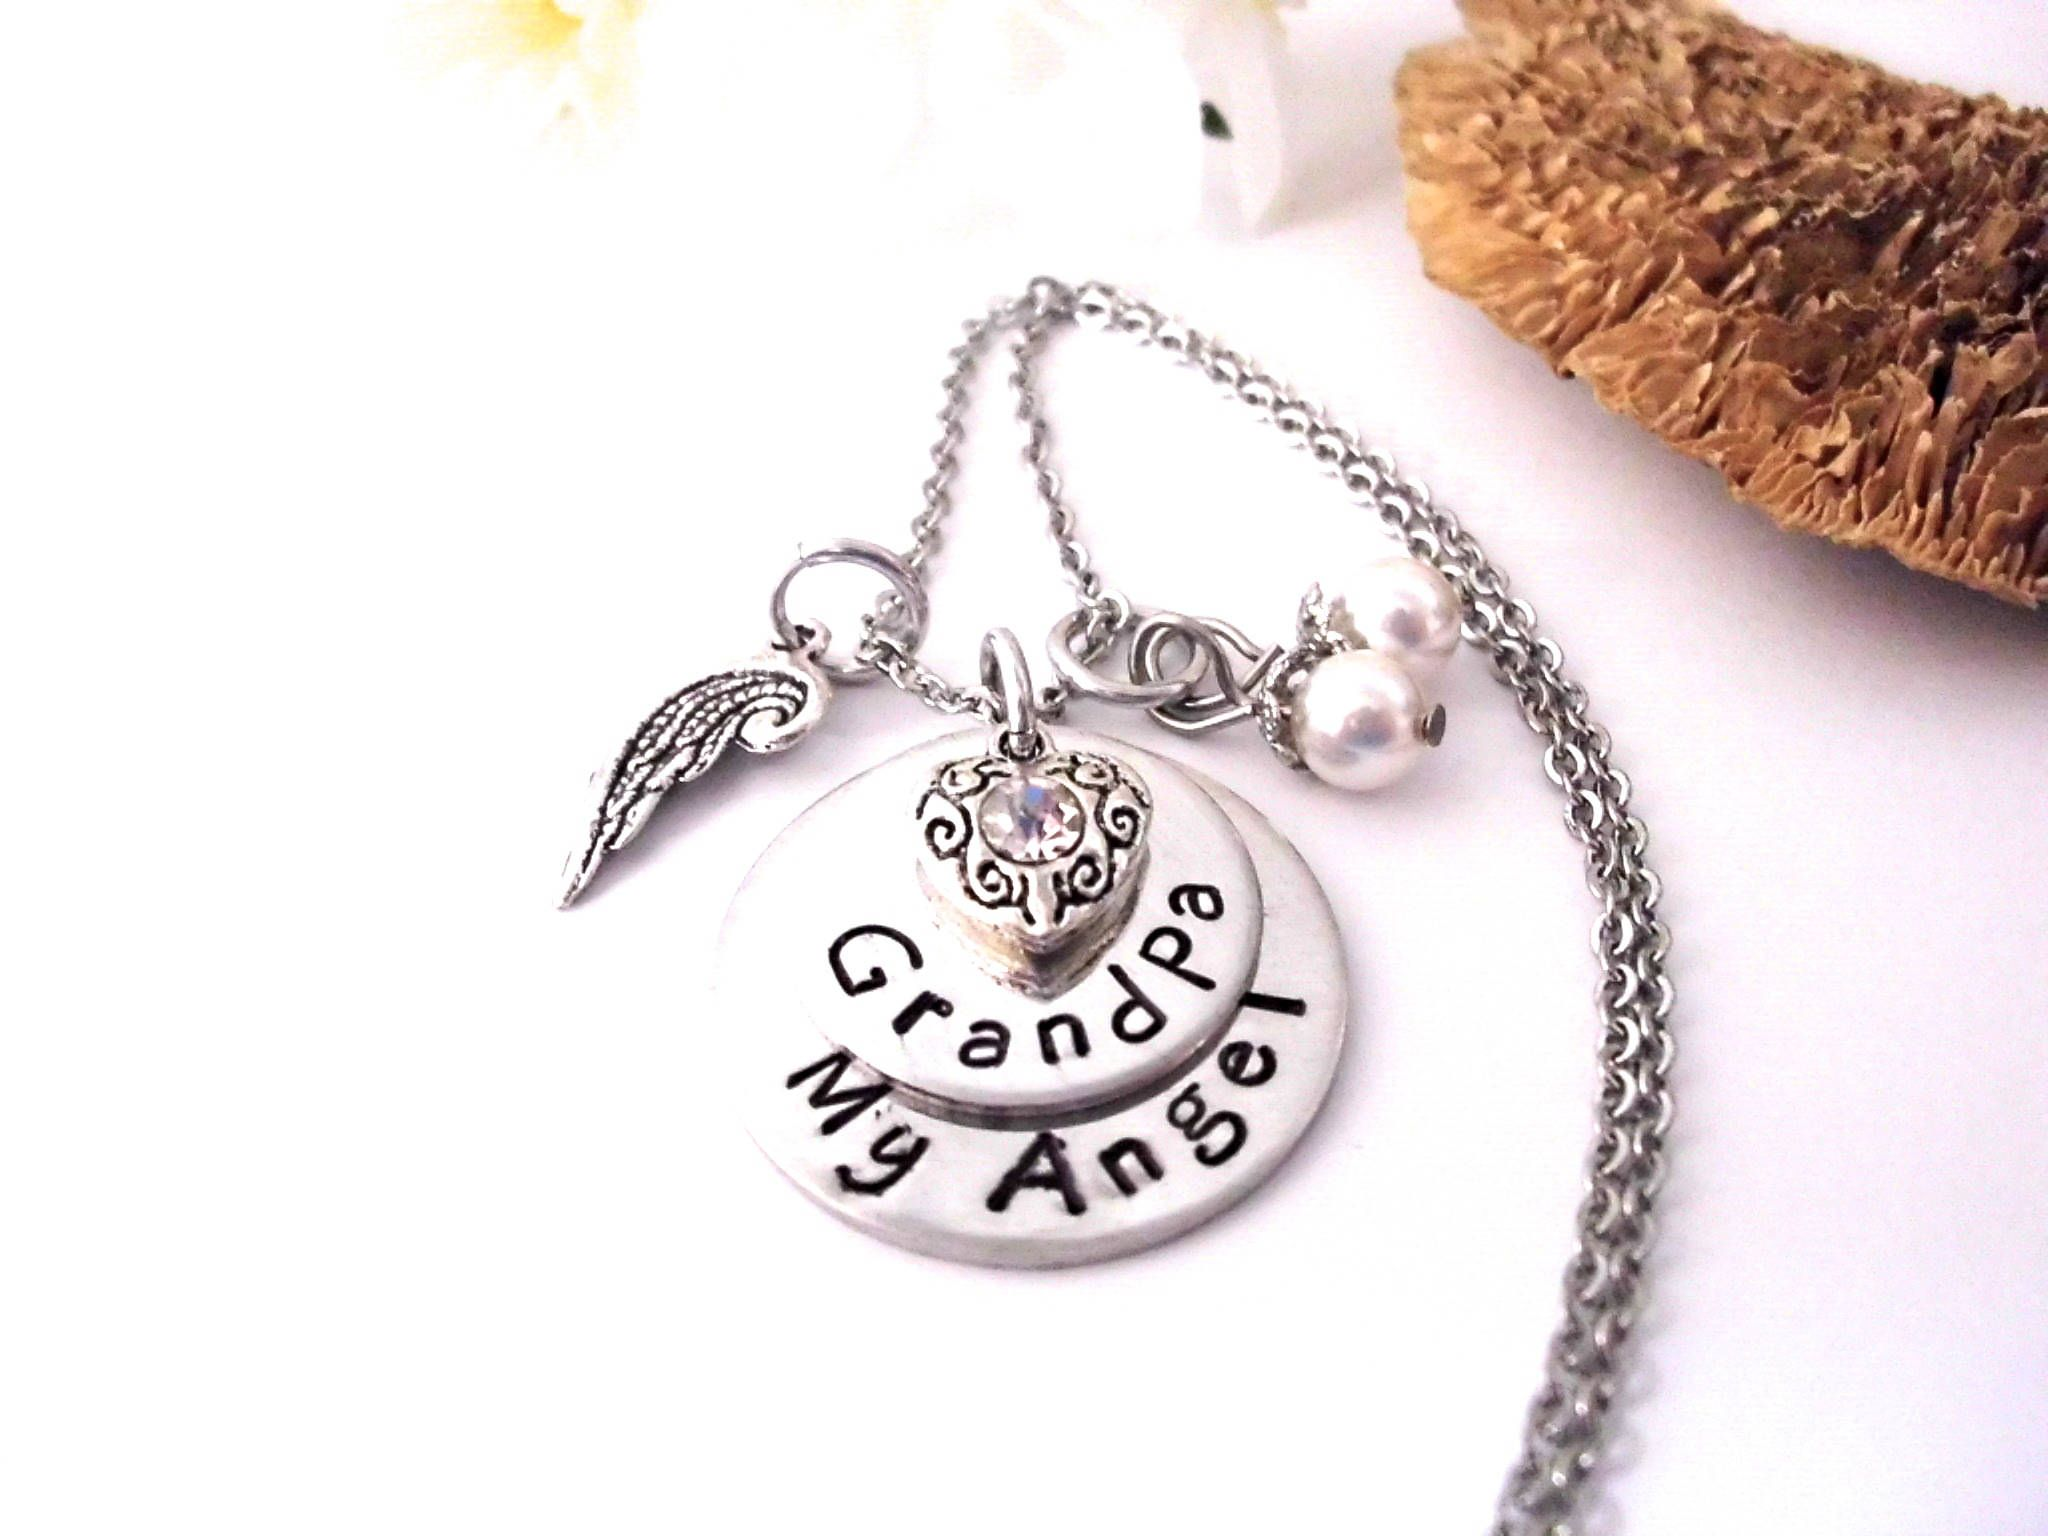 remembered optional remembrance memorial necklace engraving angel not me forget wings p asp someone